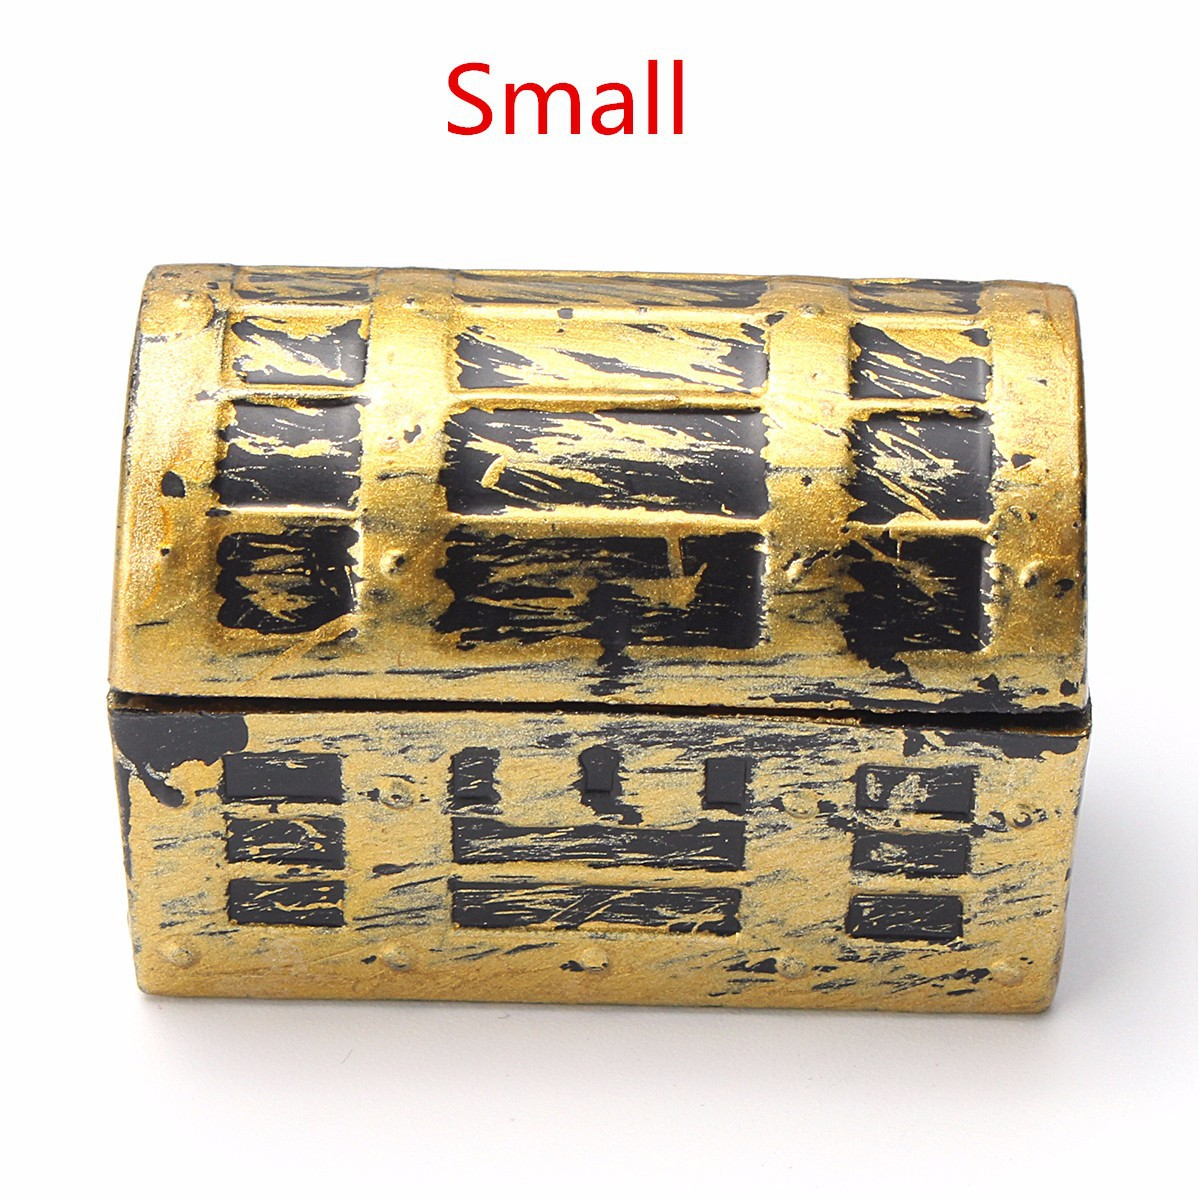 Size Pirate Jewelry Storage Box Case Holder Vintage Mini Treasure Jpg  1200x1200 Pirate Treasure Chest Gift